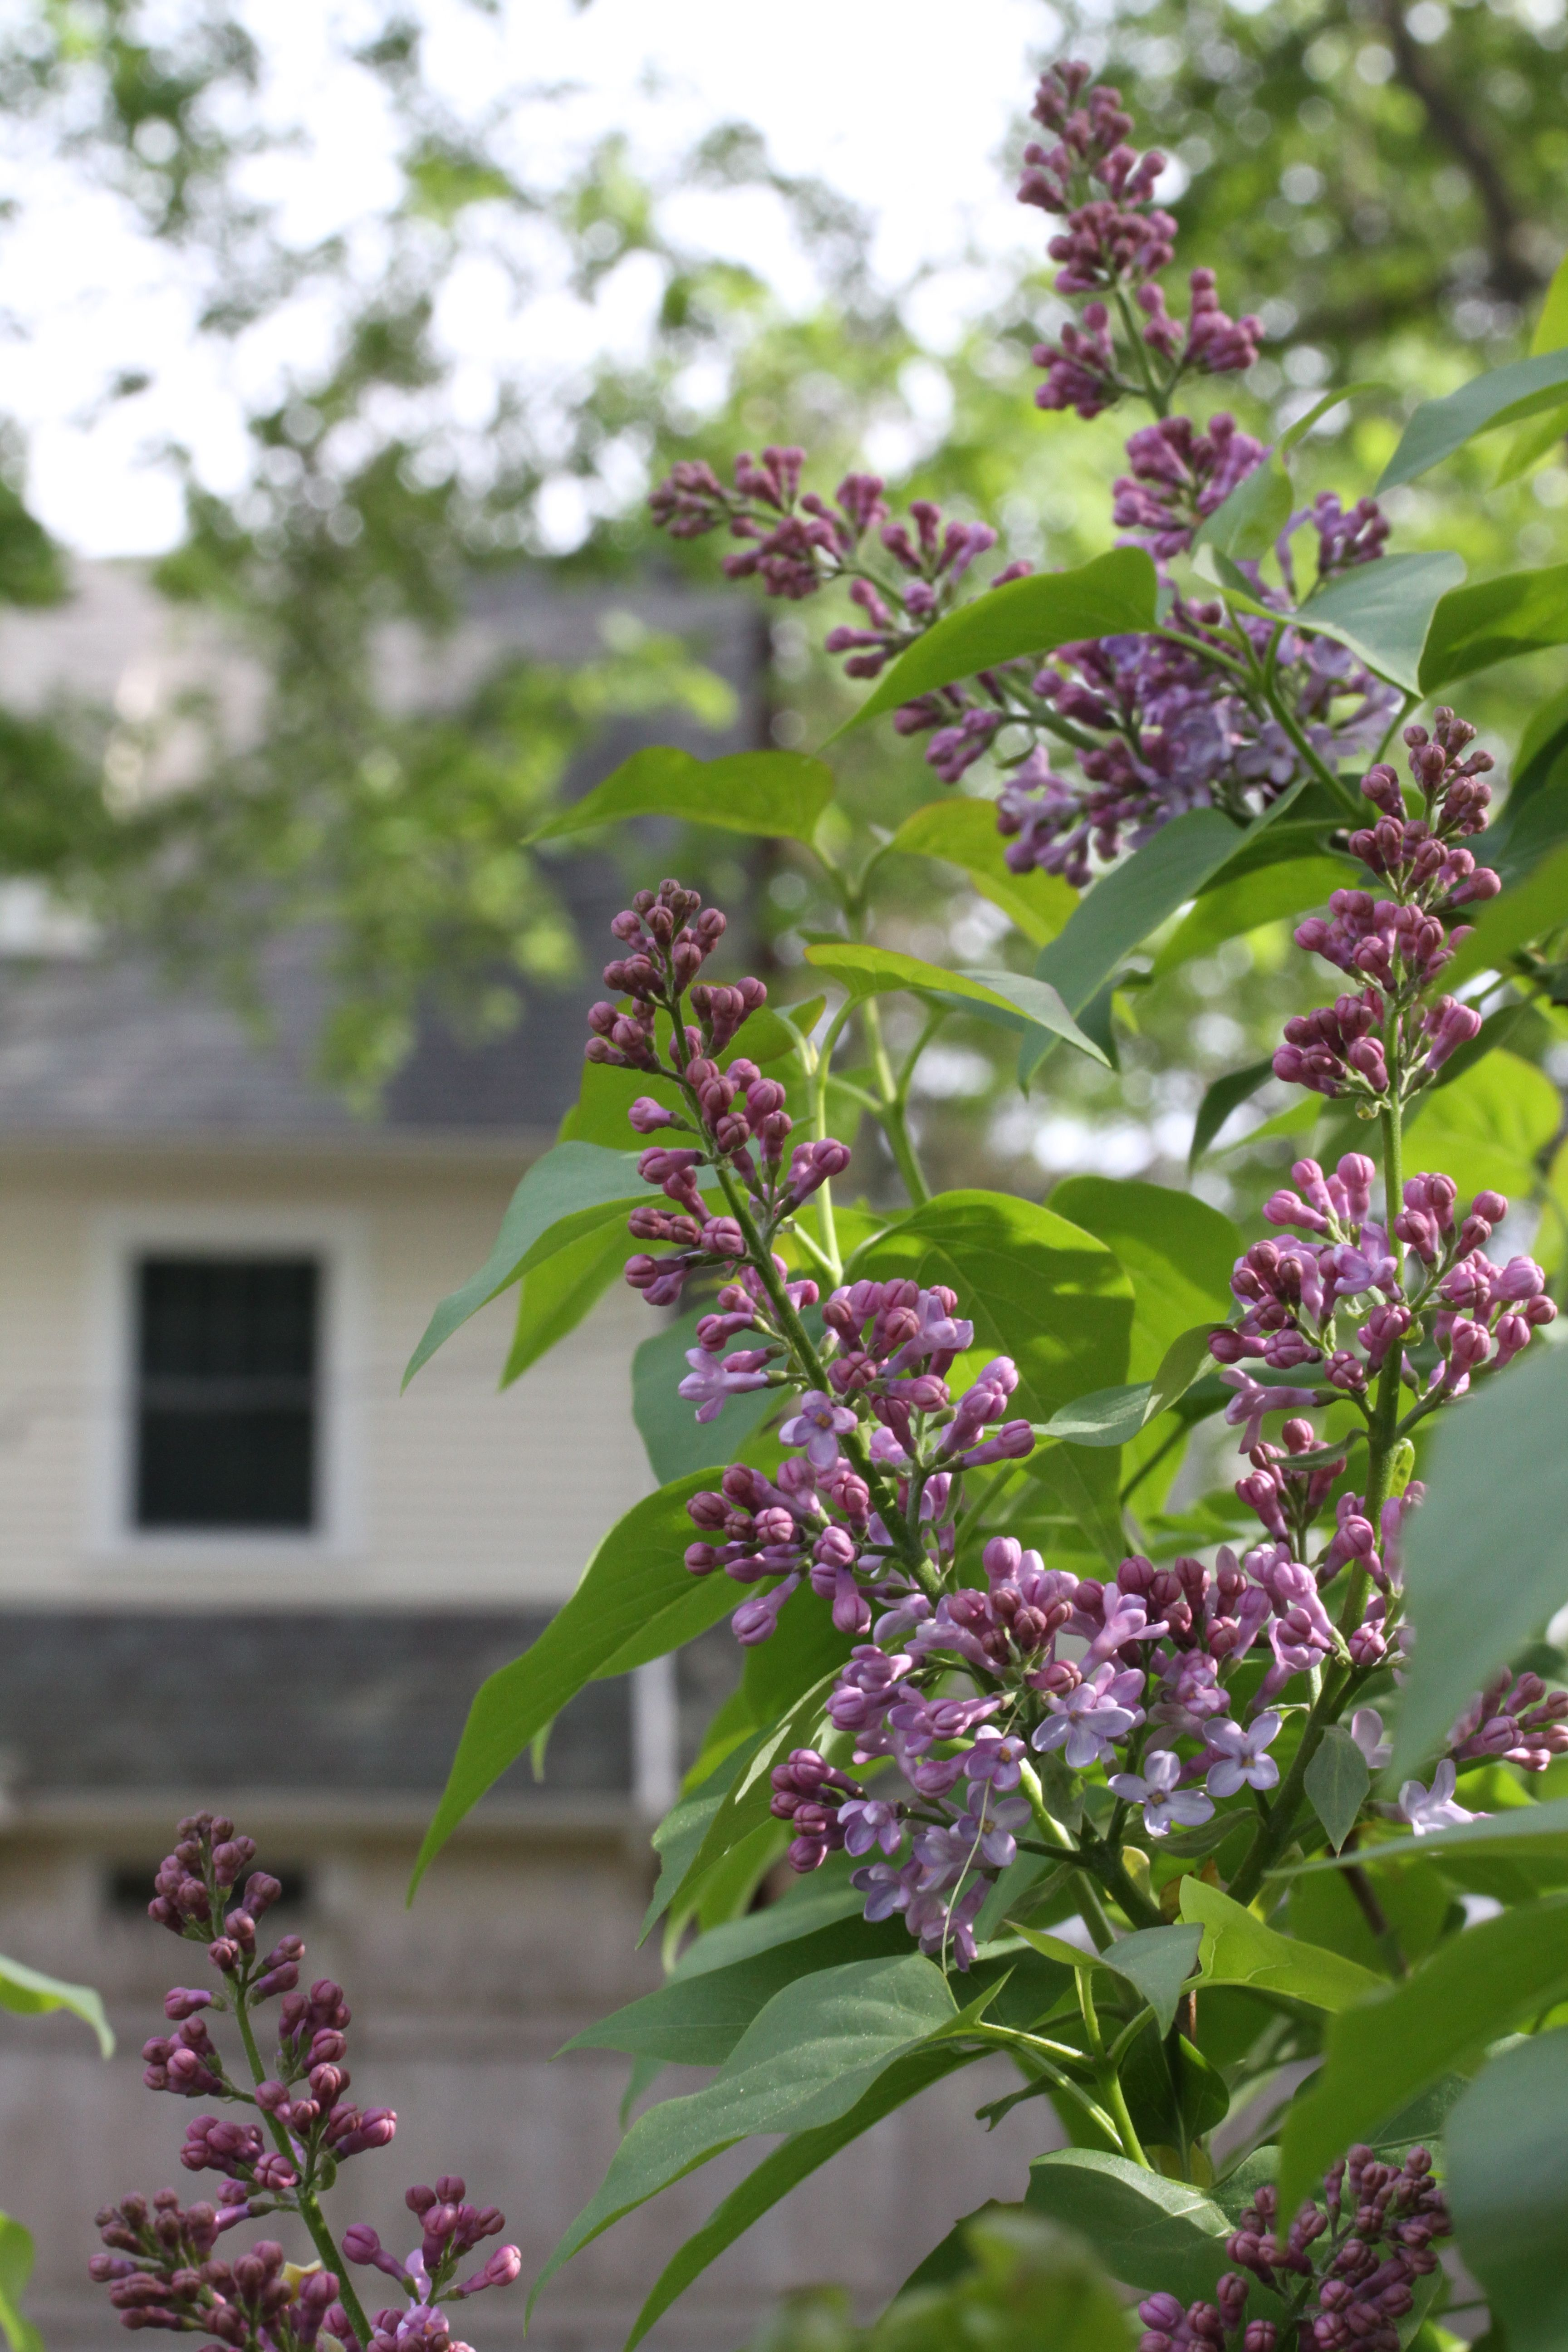 Last year we didn't have lilacs. This year, they scent the air deliciously.